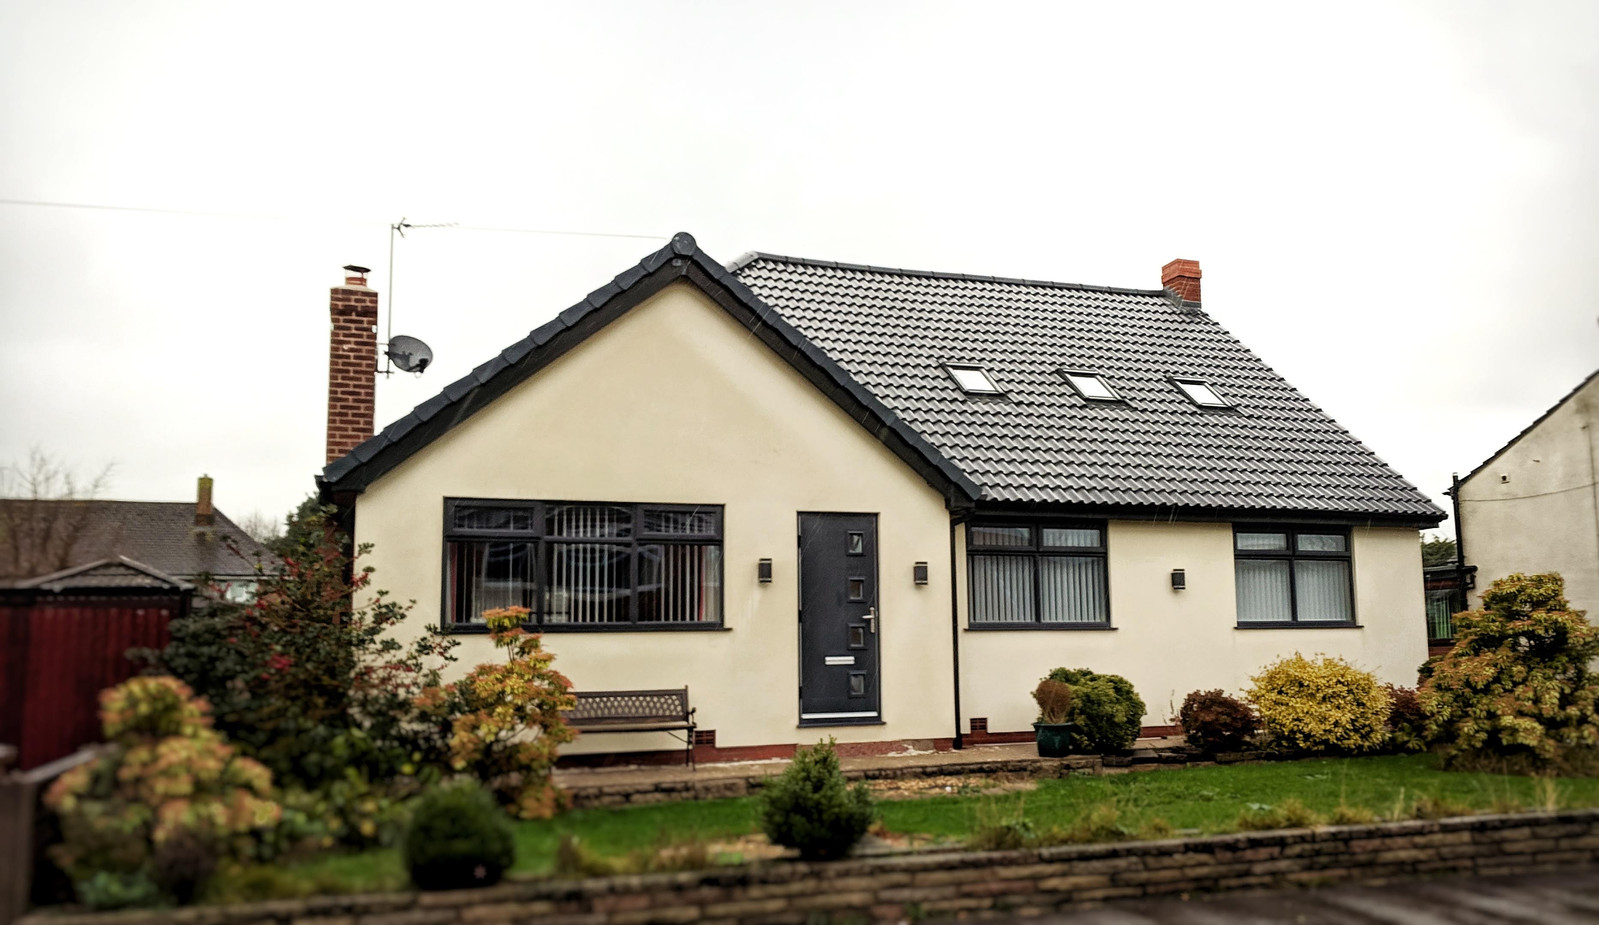 Full Refurbishment, Rear Extension and Dormer Conversion - After - Front Elevation